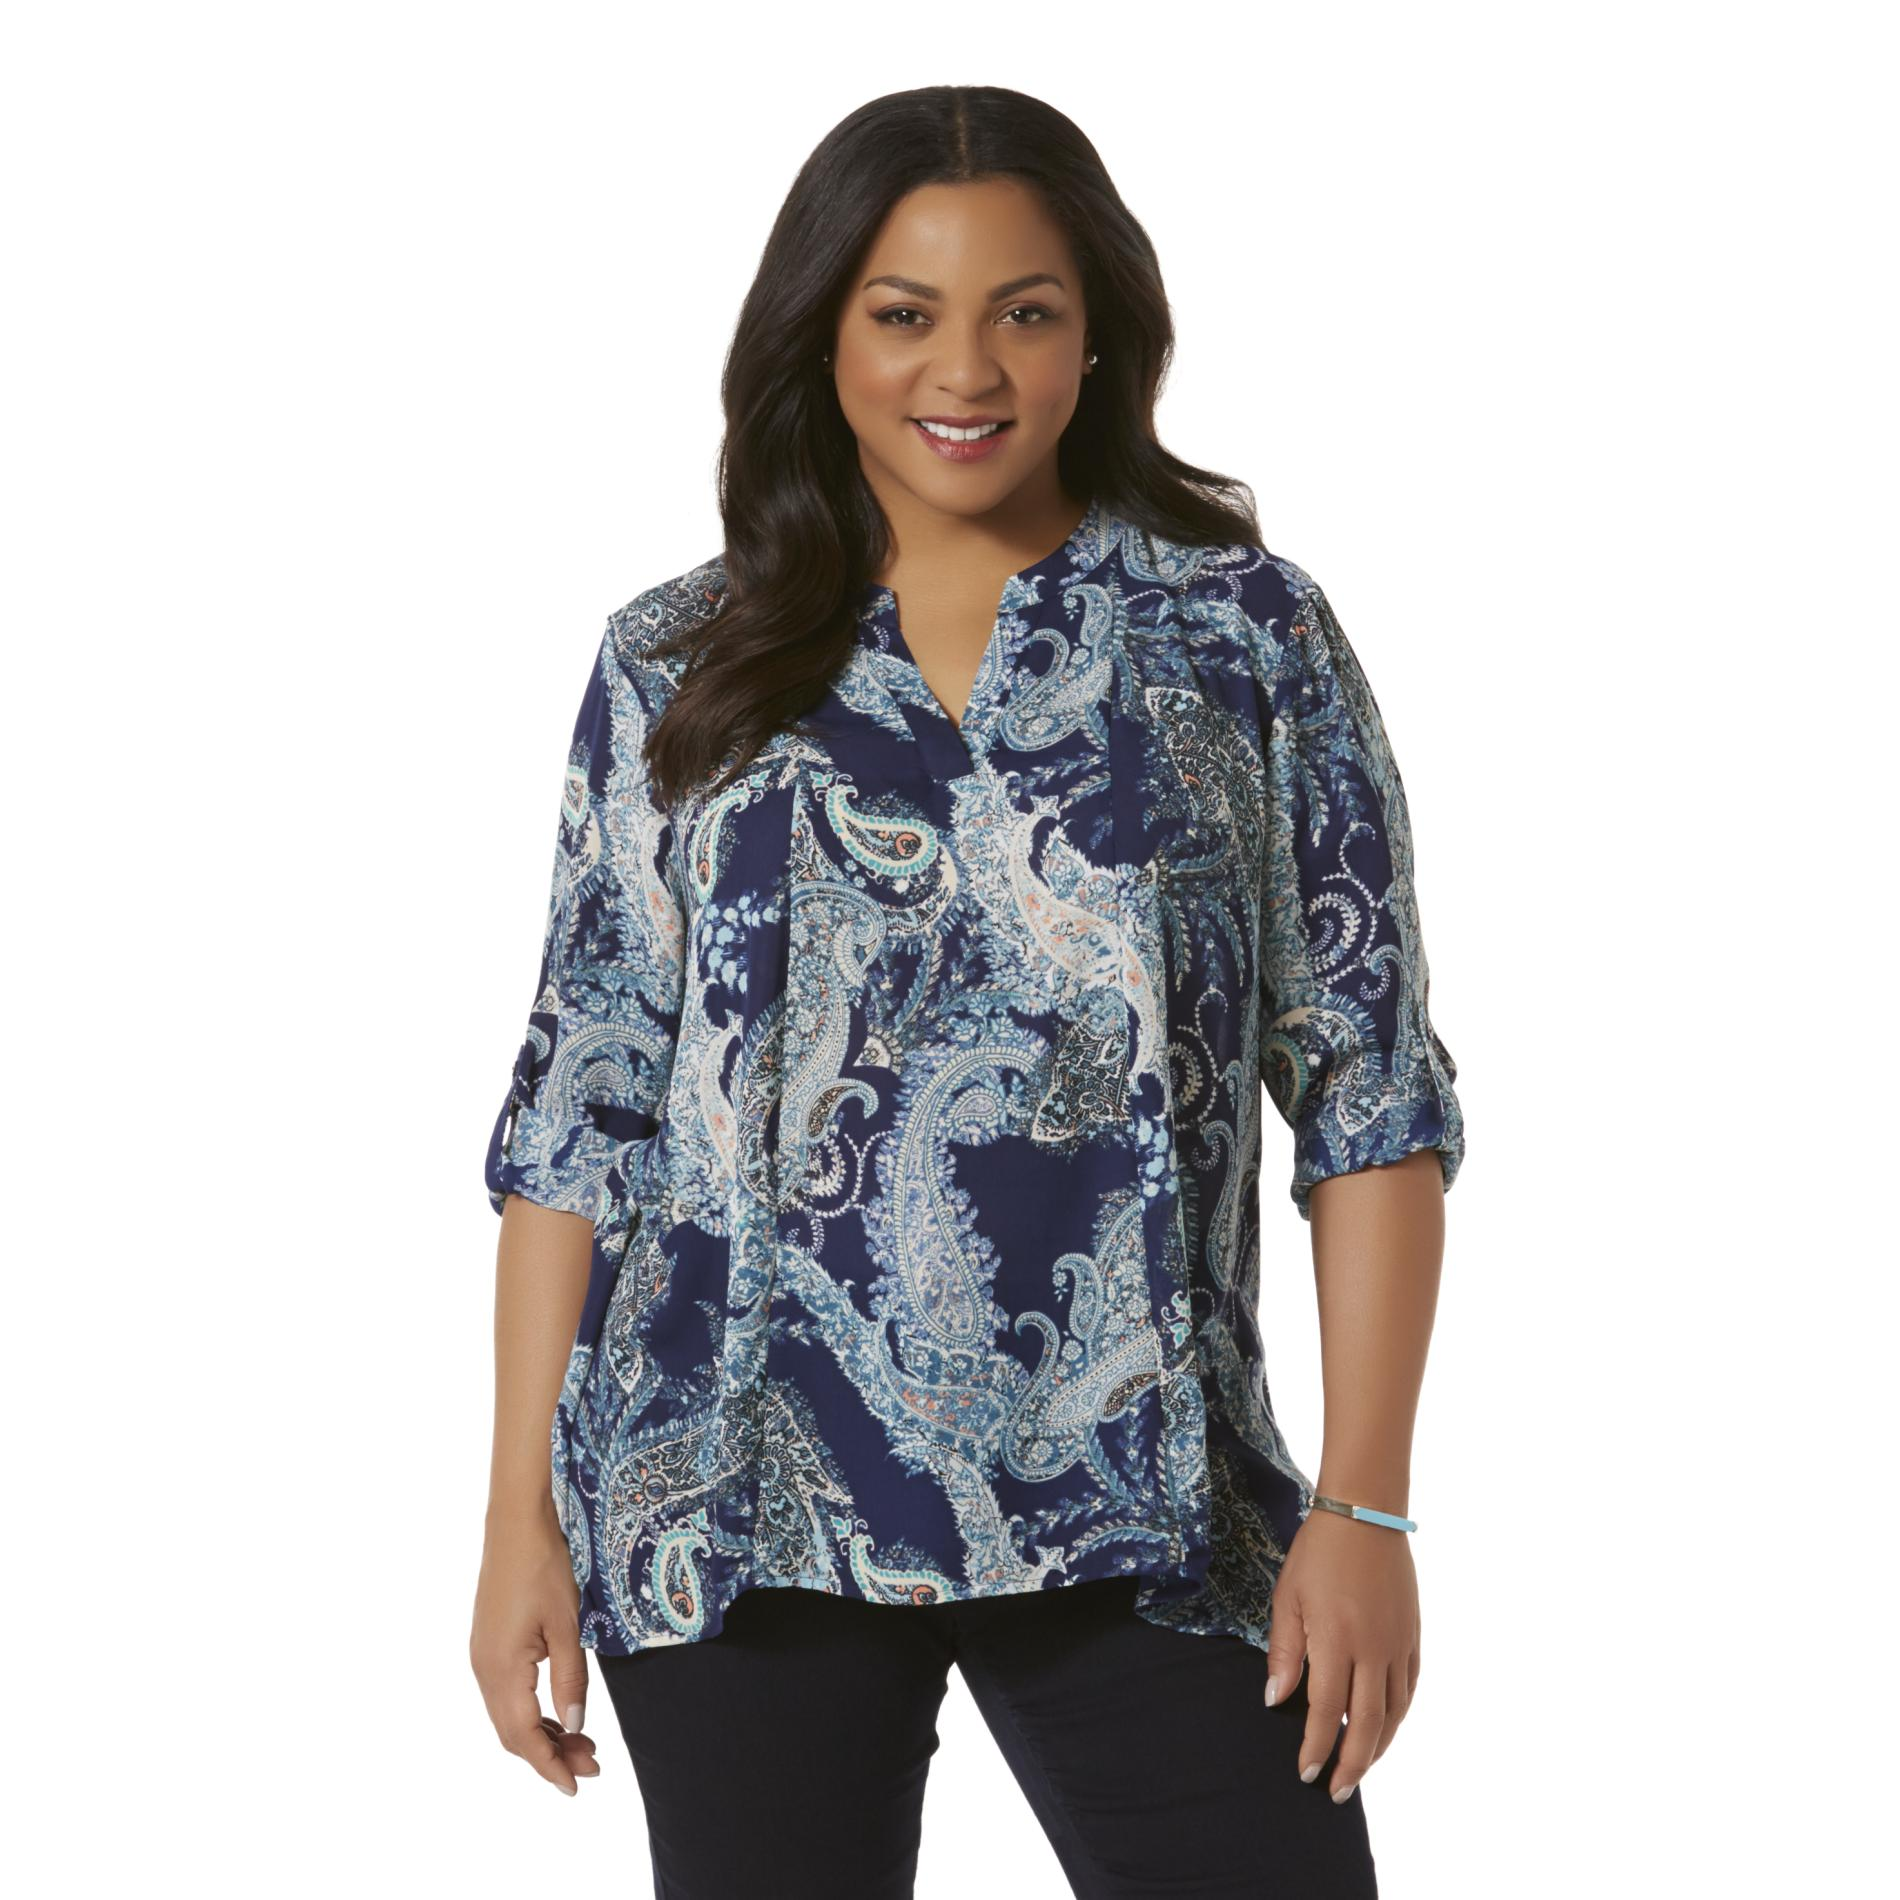 Simply Emma Plus Size Women's Plus Chiffon Split Neck Top - Paisley,  Size: 1XL plus size,  plus size fashion plus size appare